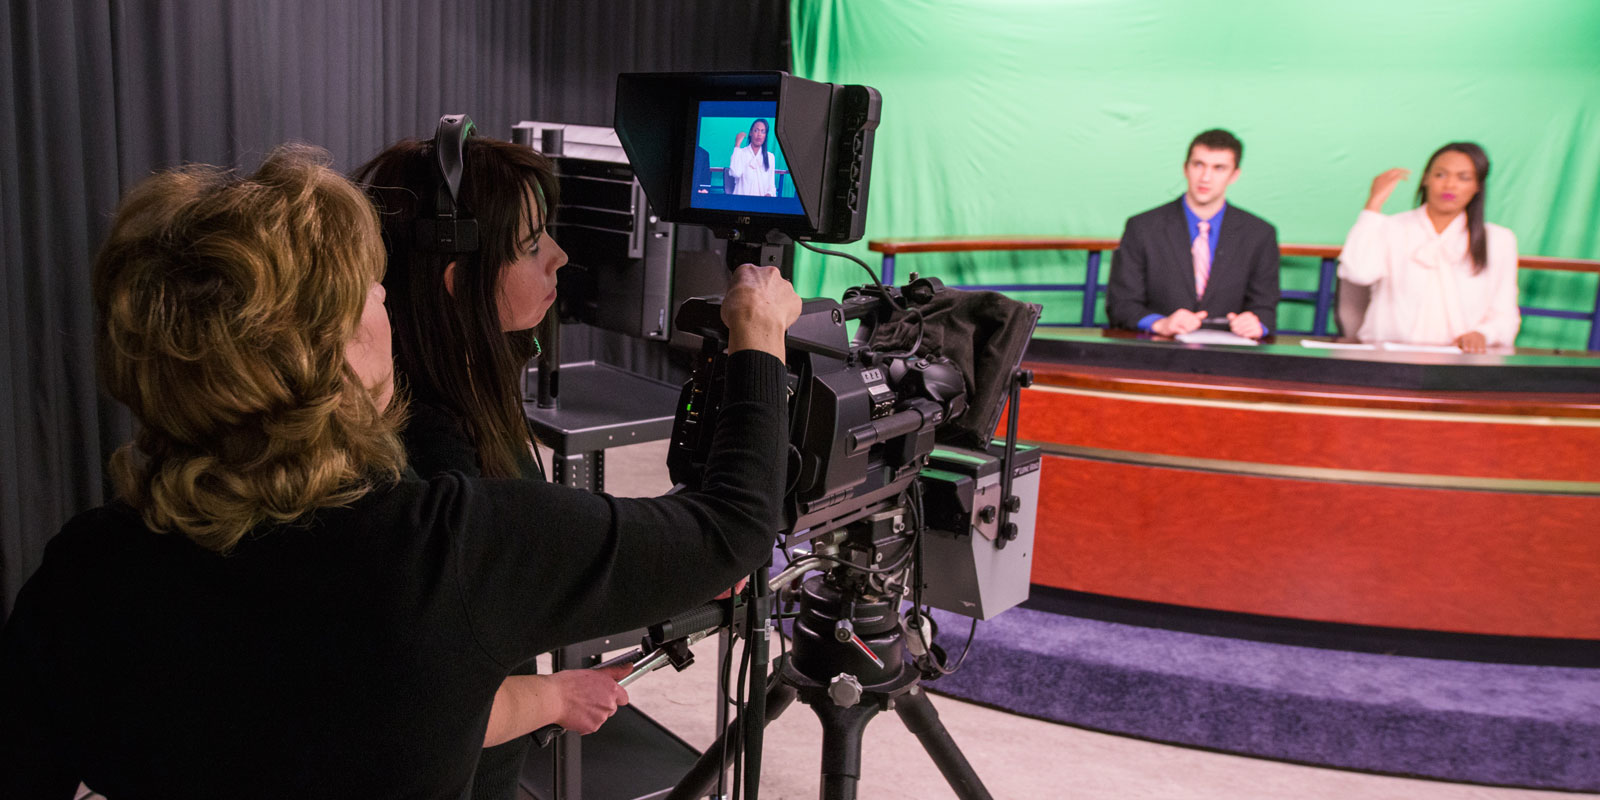 Star City News production students prepare for a live broadcast